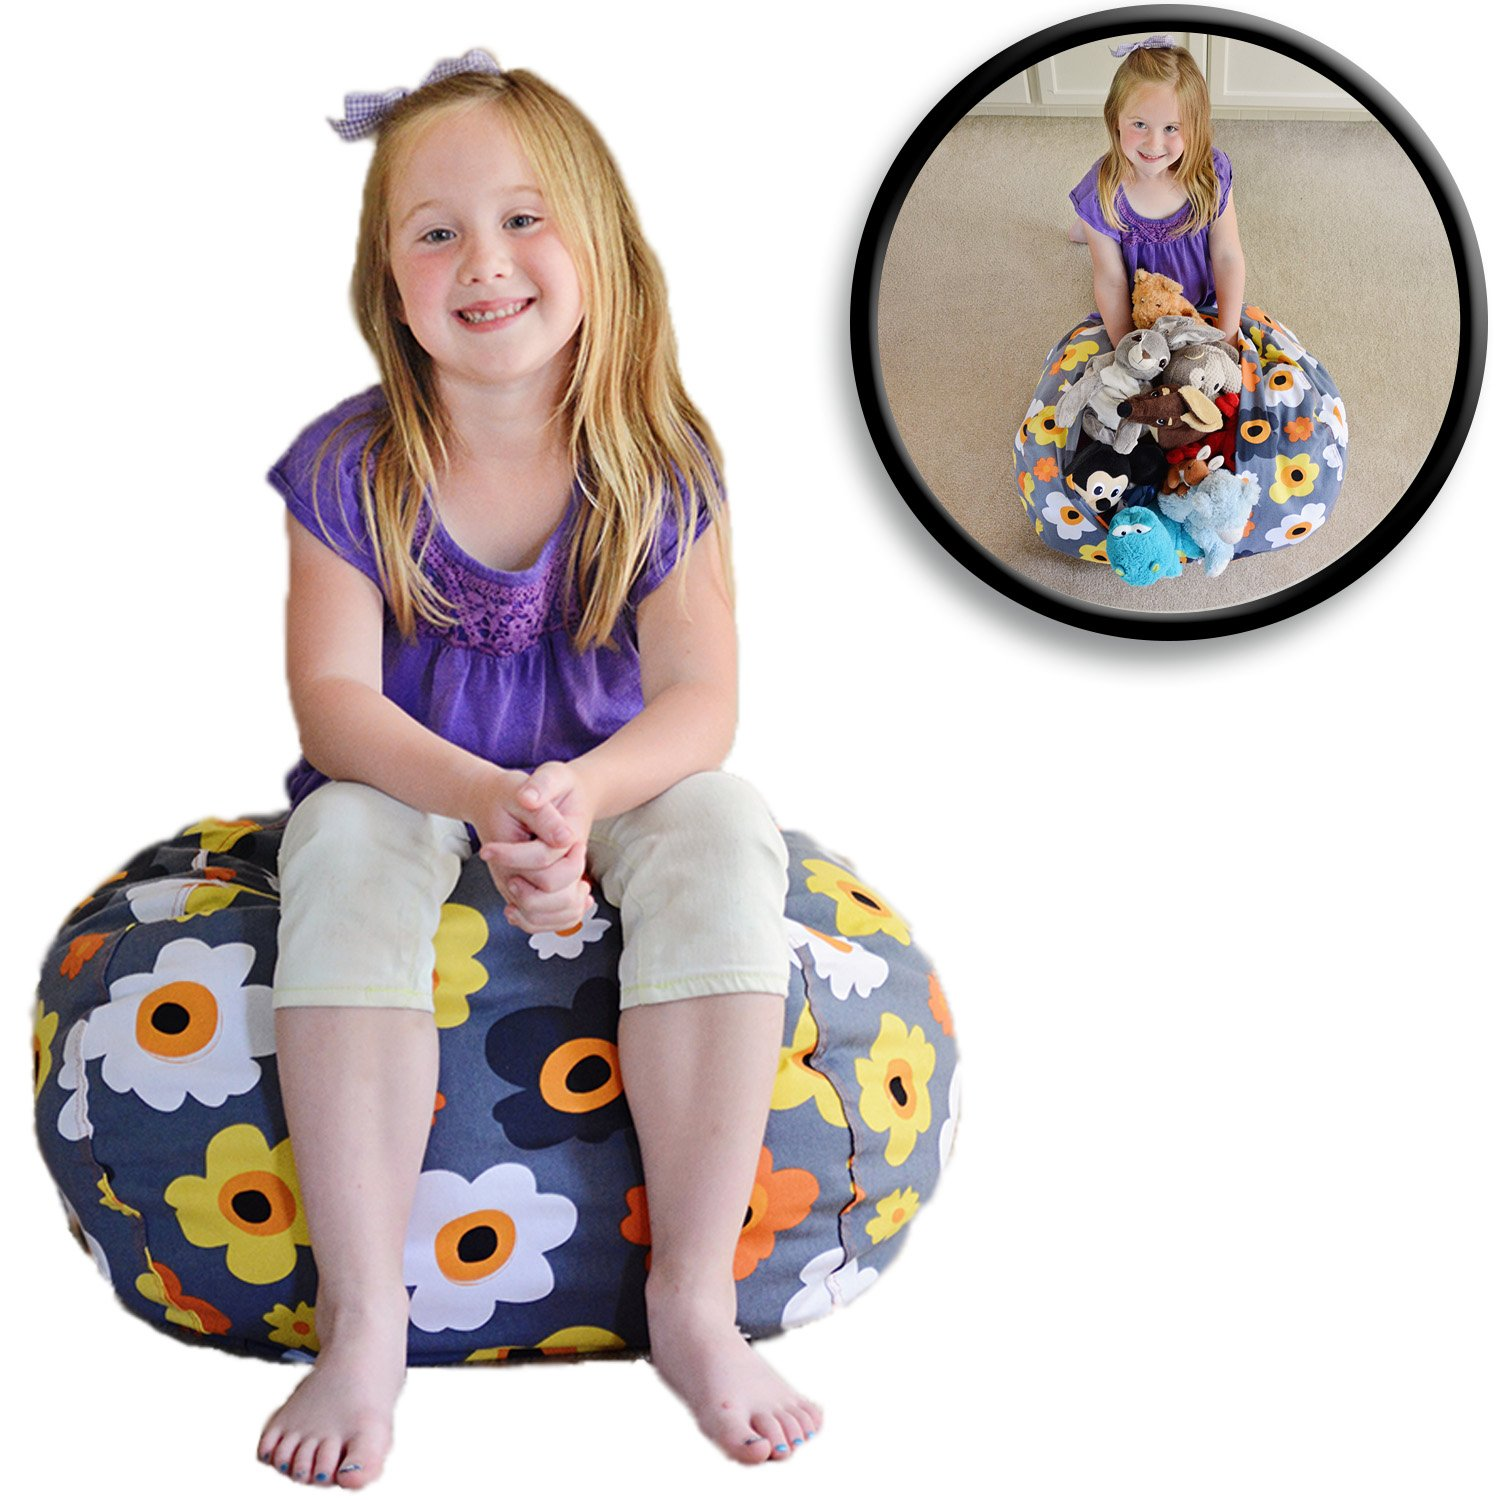 """Stuffed Animal Storage Bean Bag Chair - Premium Cotton Canvas - Clean Up The Room And Put Those Critters To Work For You! - By Creative Qt (27"""", Grey Floral)"""